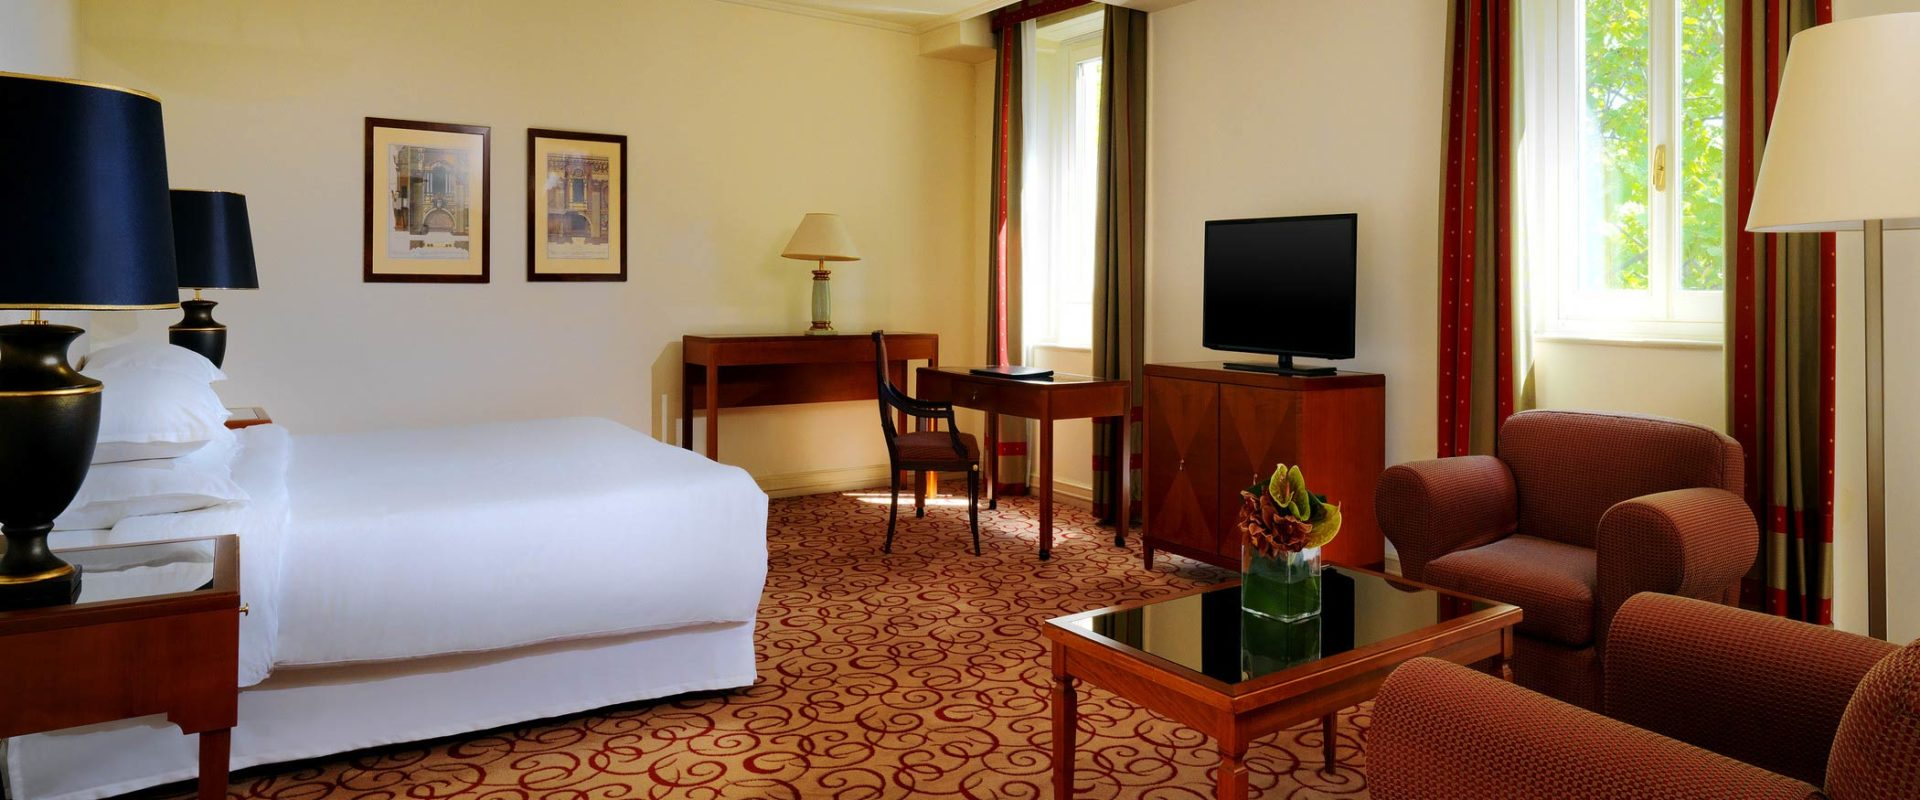 Sheraton-Diana-Majestic-Deluxe-Suite-Bedroom